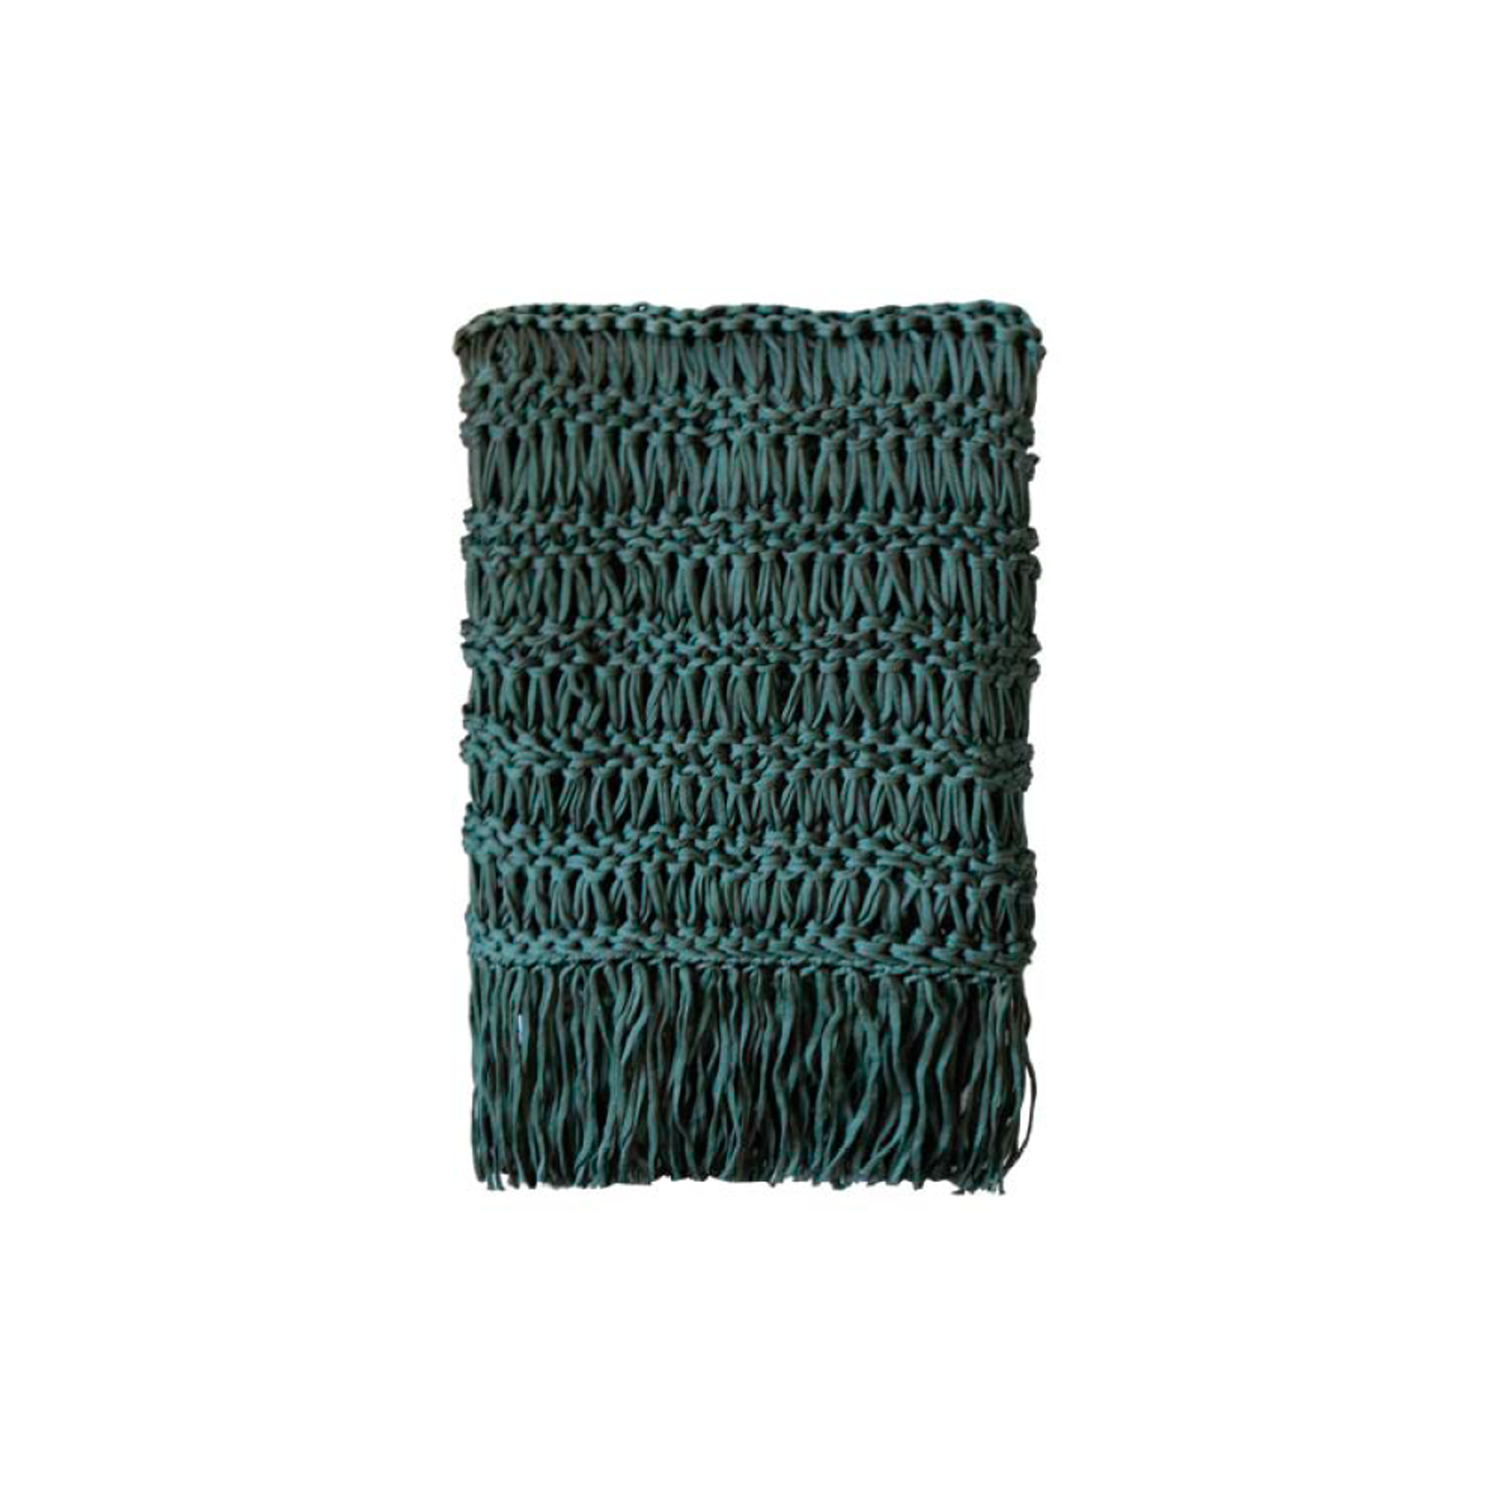 Veleiro Nautical Throw - The Veleiro Nautical Throw is carefully knitted within a trained community of women that found in their craft a way to provide for their families. The outdoor collection is made with synthetic fibres, resistant to weather exposure. The throw is hand woven nautical cord, made in Brazil.   Bespoke sizes and colours are also available upon request, see colour chart for reference.   | Matter of Stuff